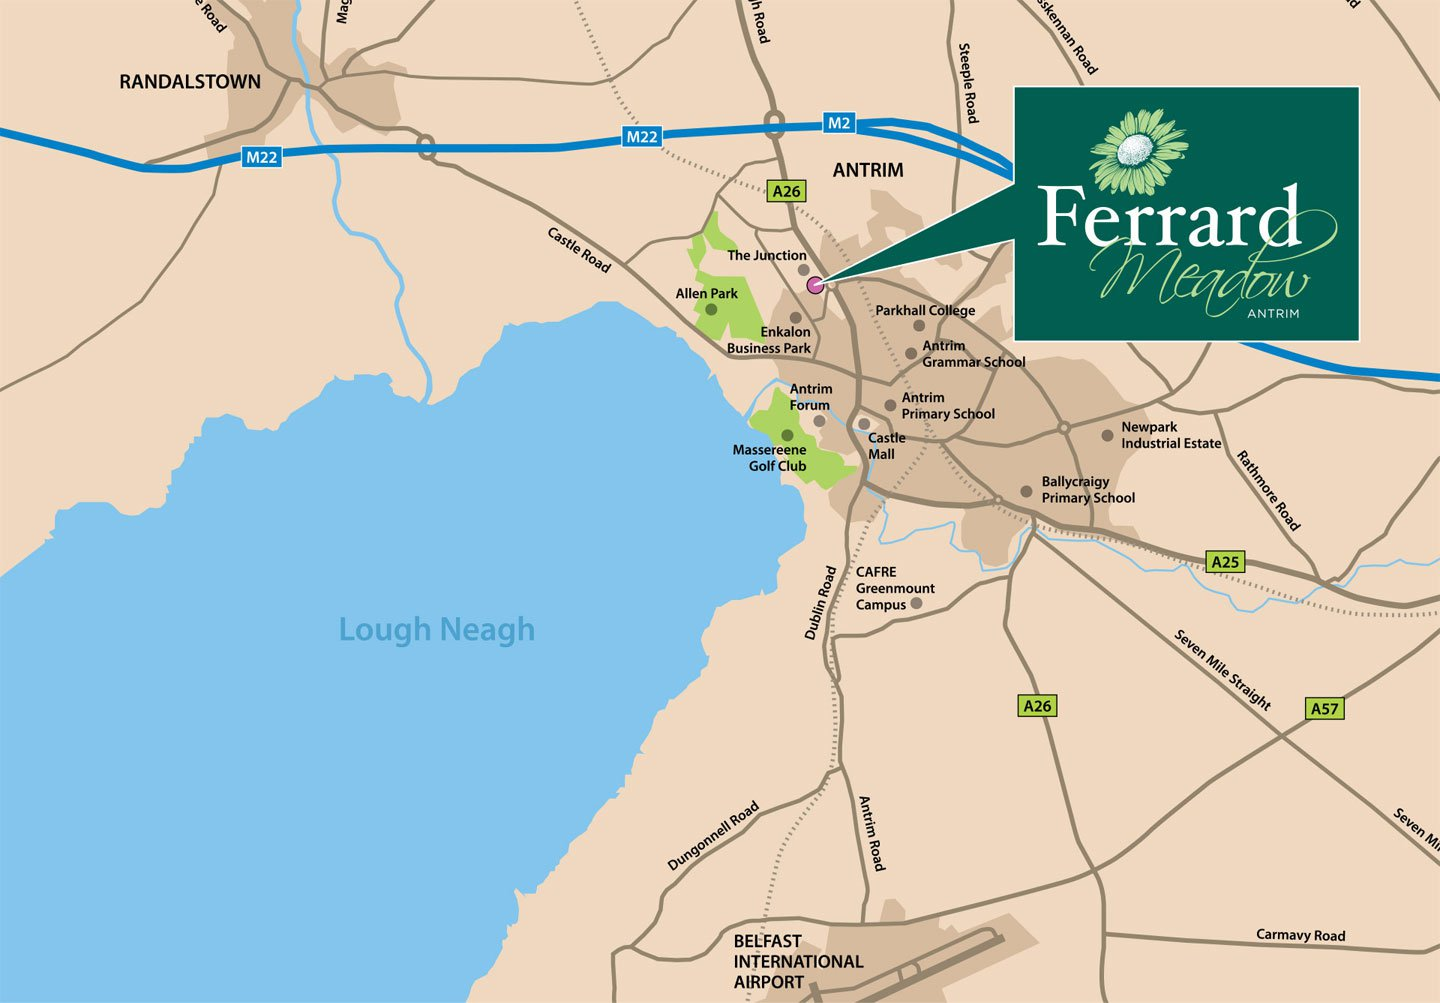 Ferrard Meadow, Antrim, Location Map